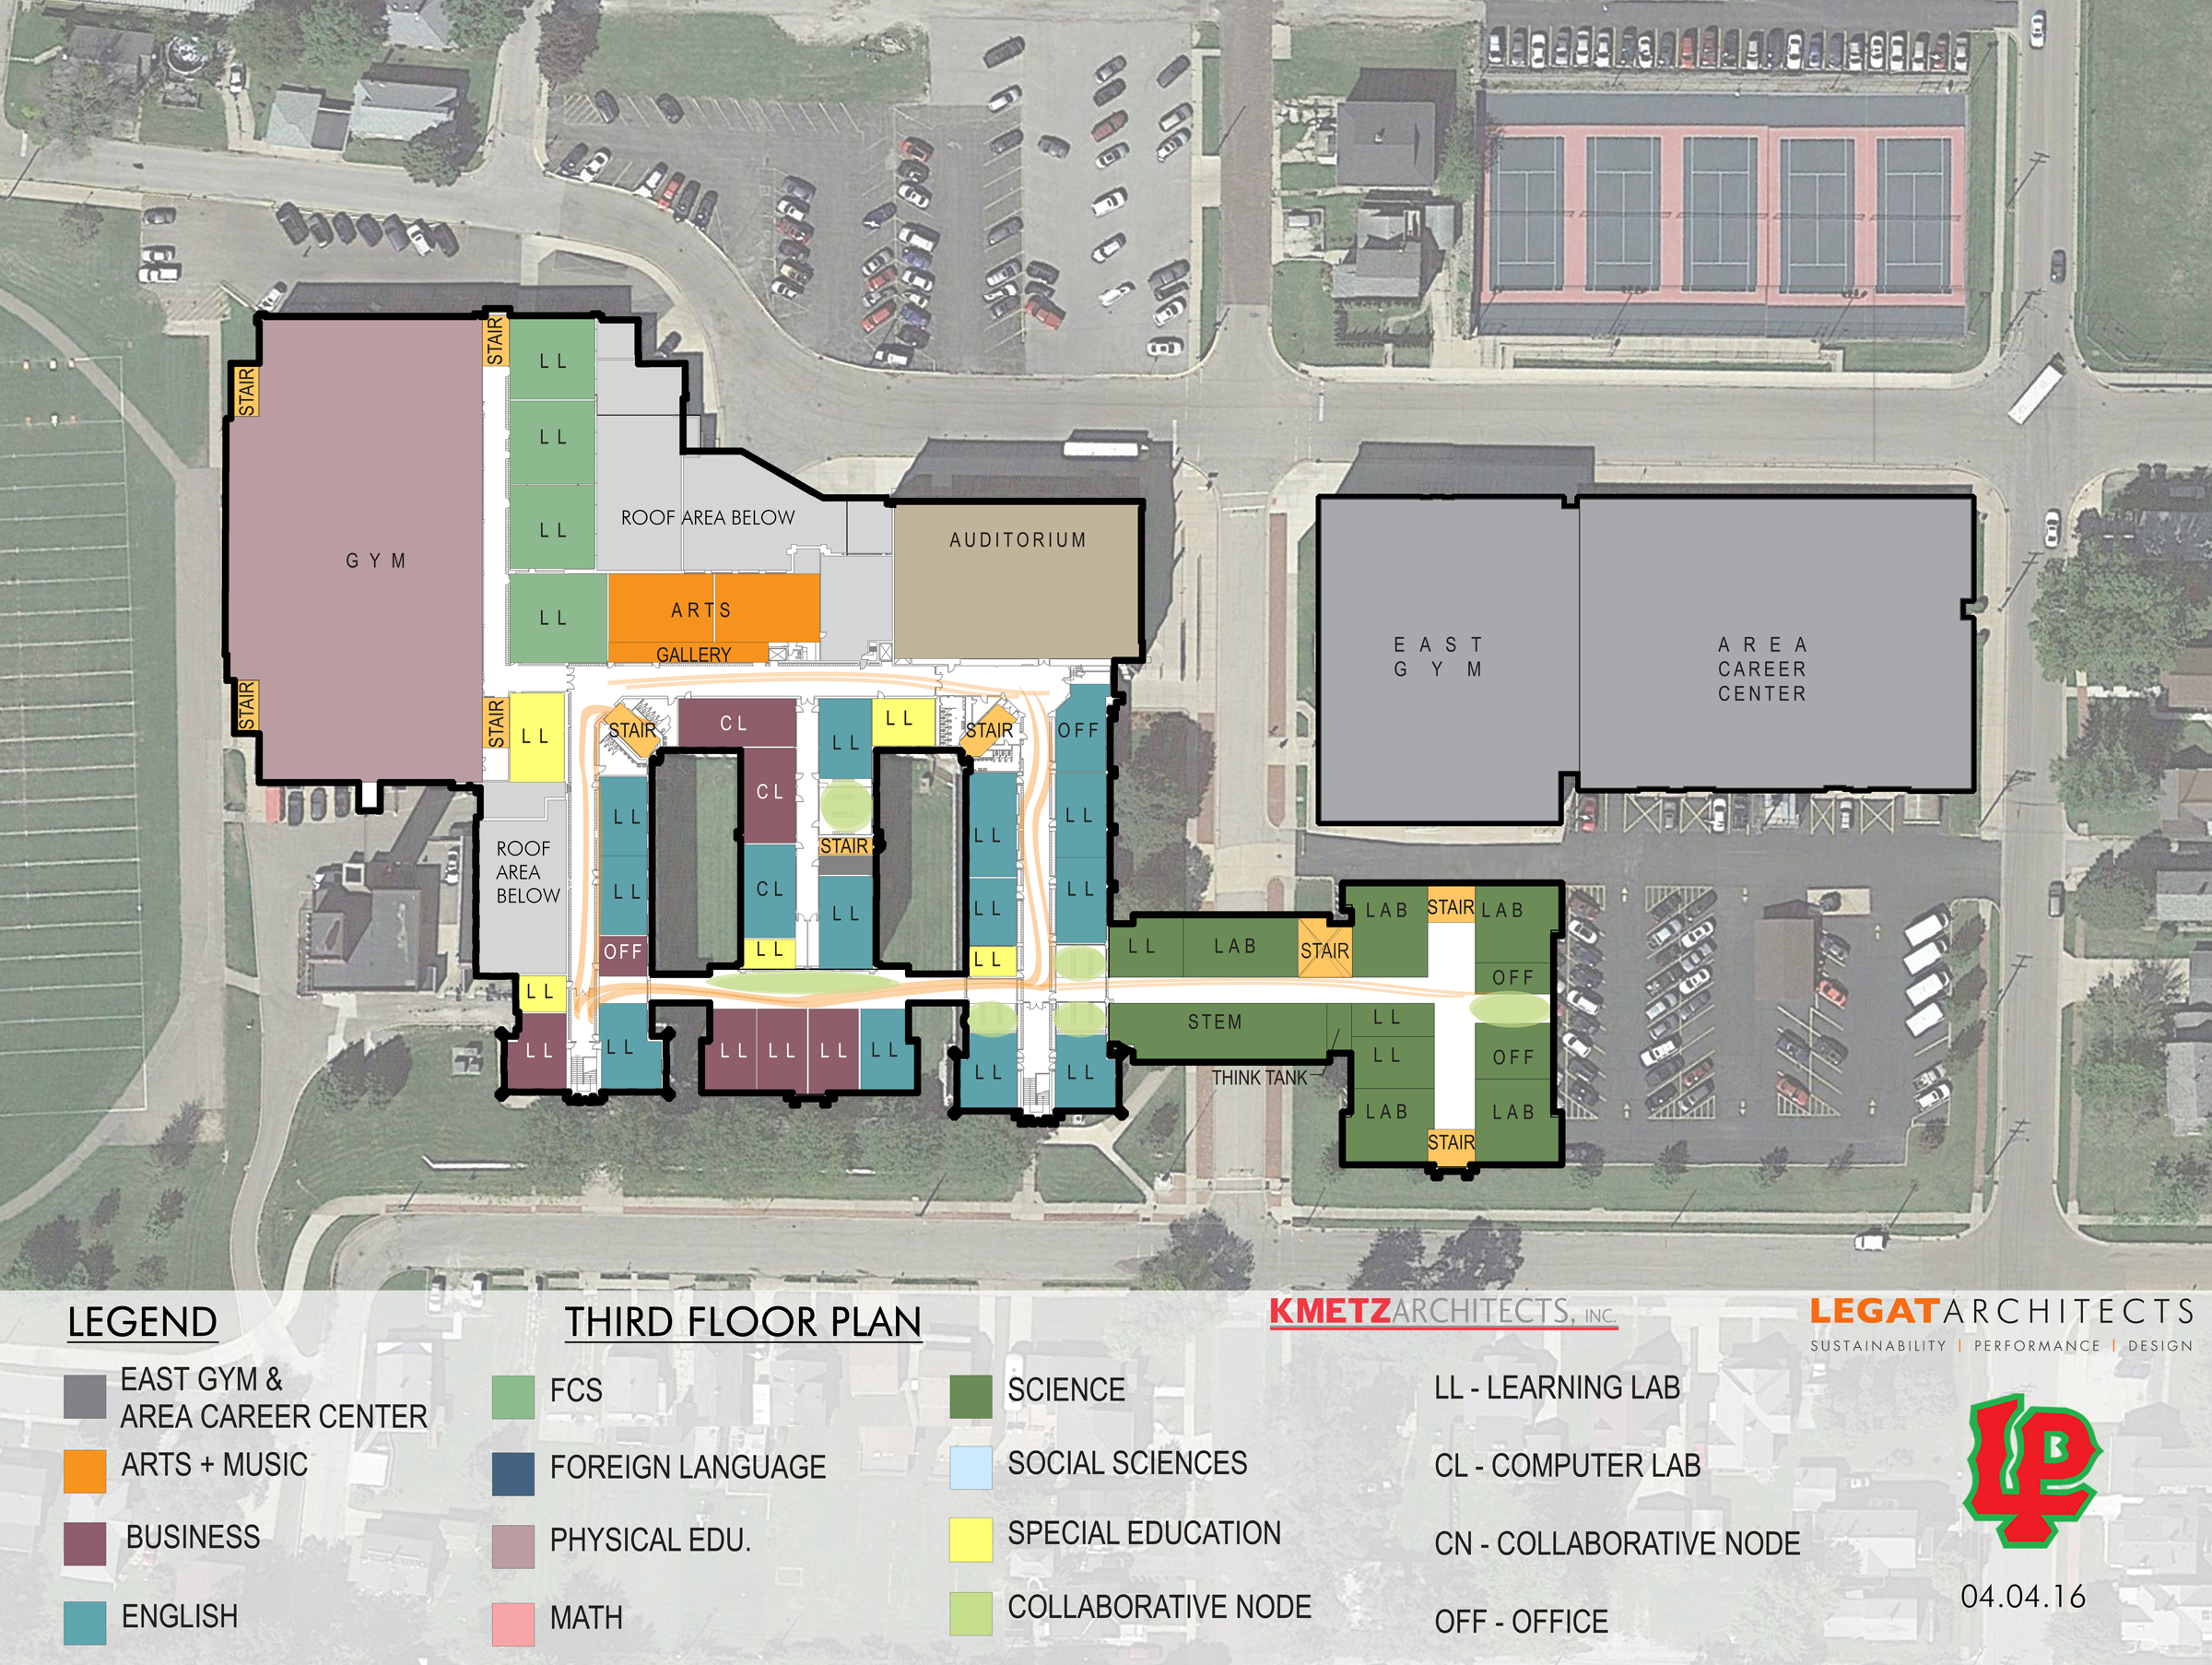 facility master plan lphs campus planning on the main floor there would be three notable changes along with the addition of the new stem wing on the southeast corner of the campus